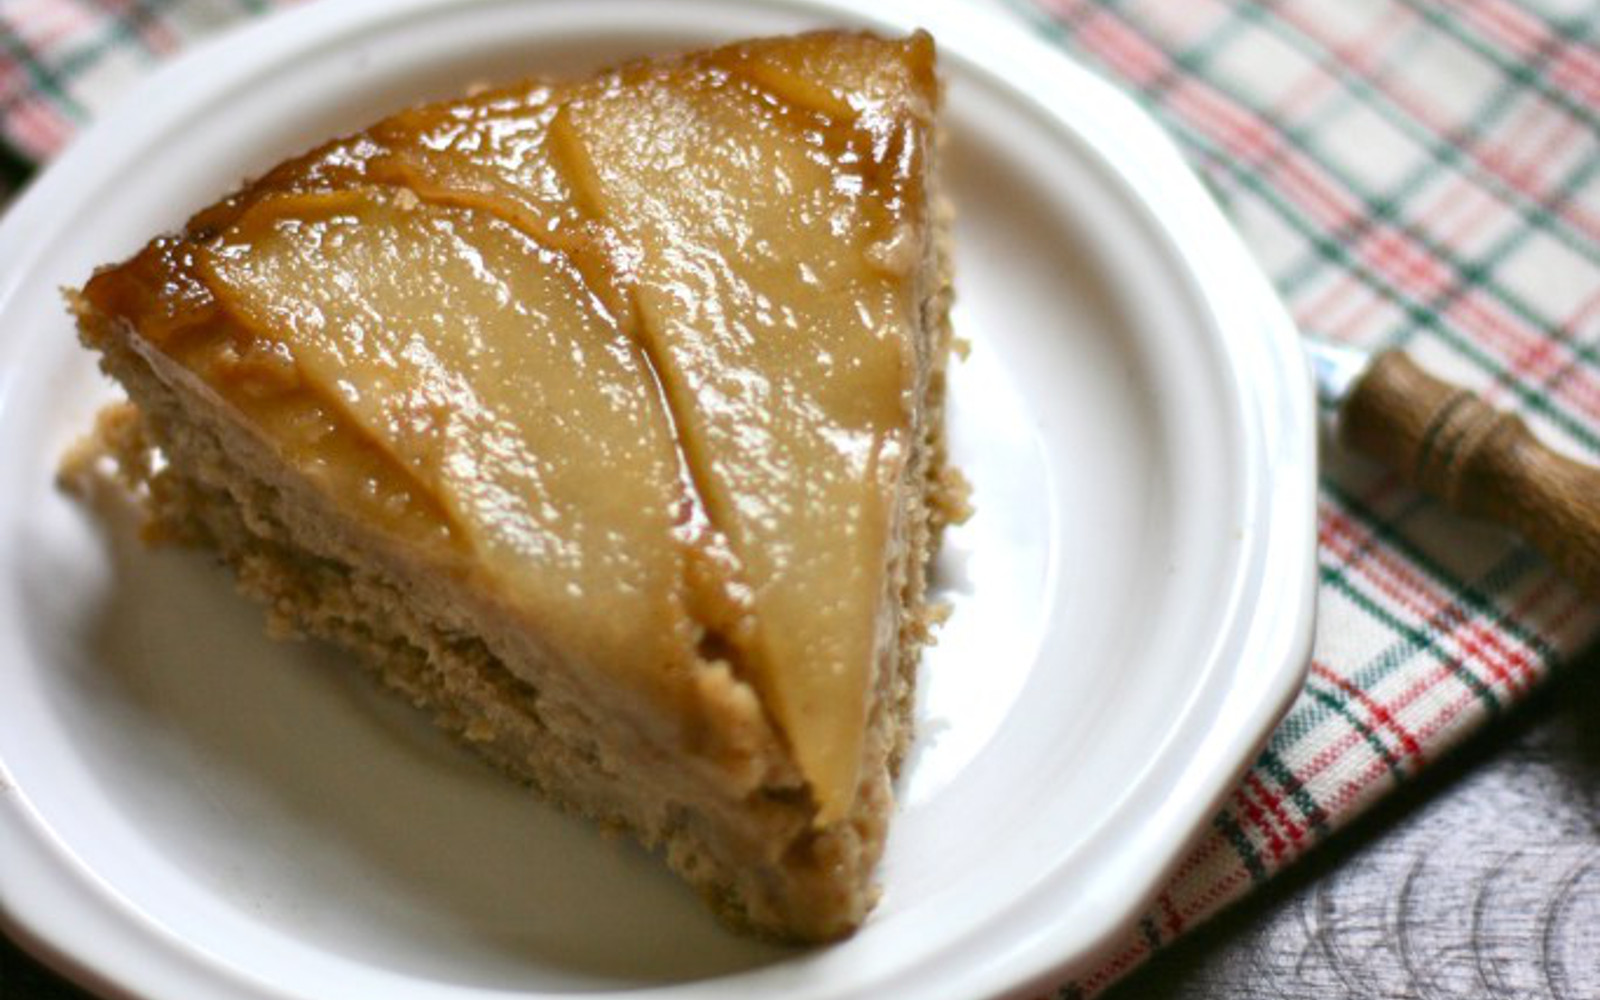 Ginger-Spiced Pear Upsidedown Cake